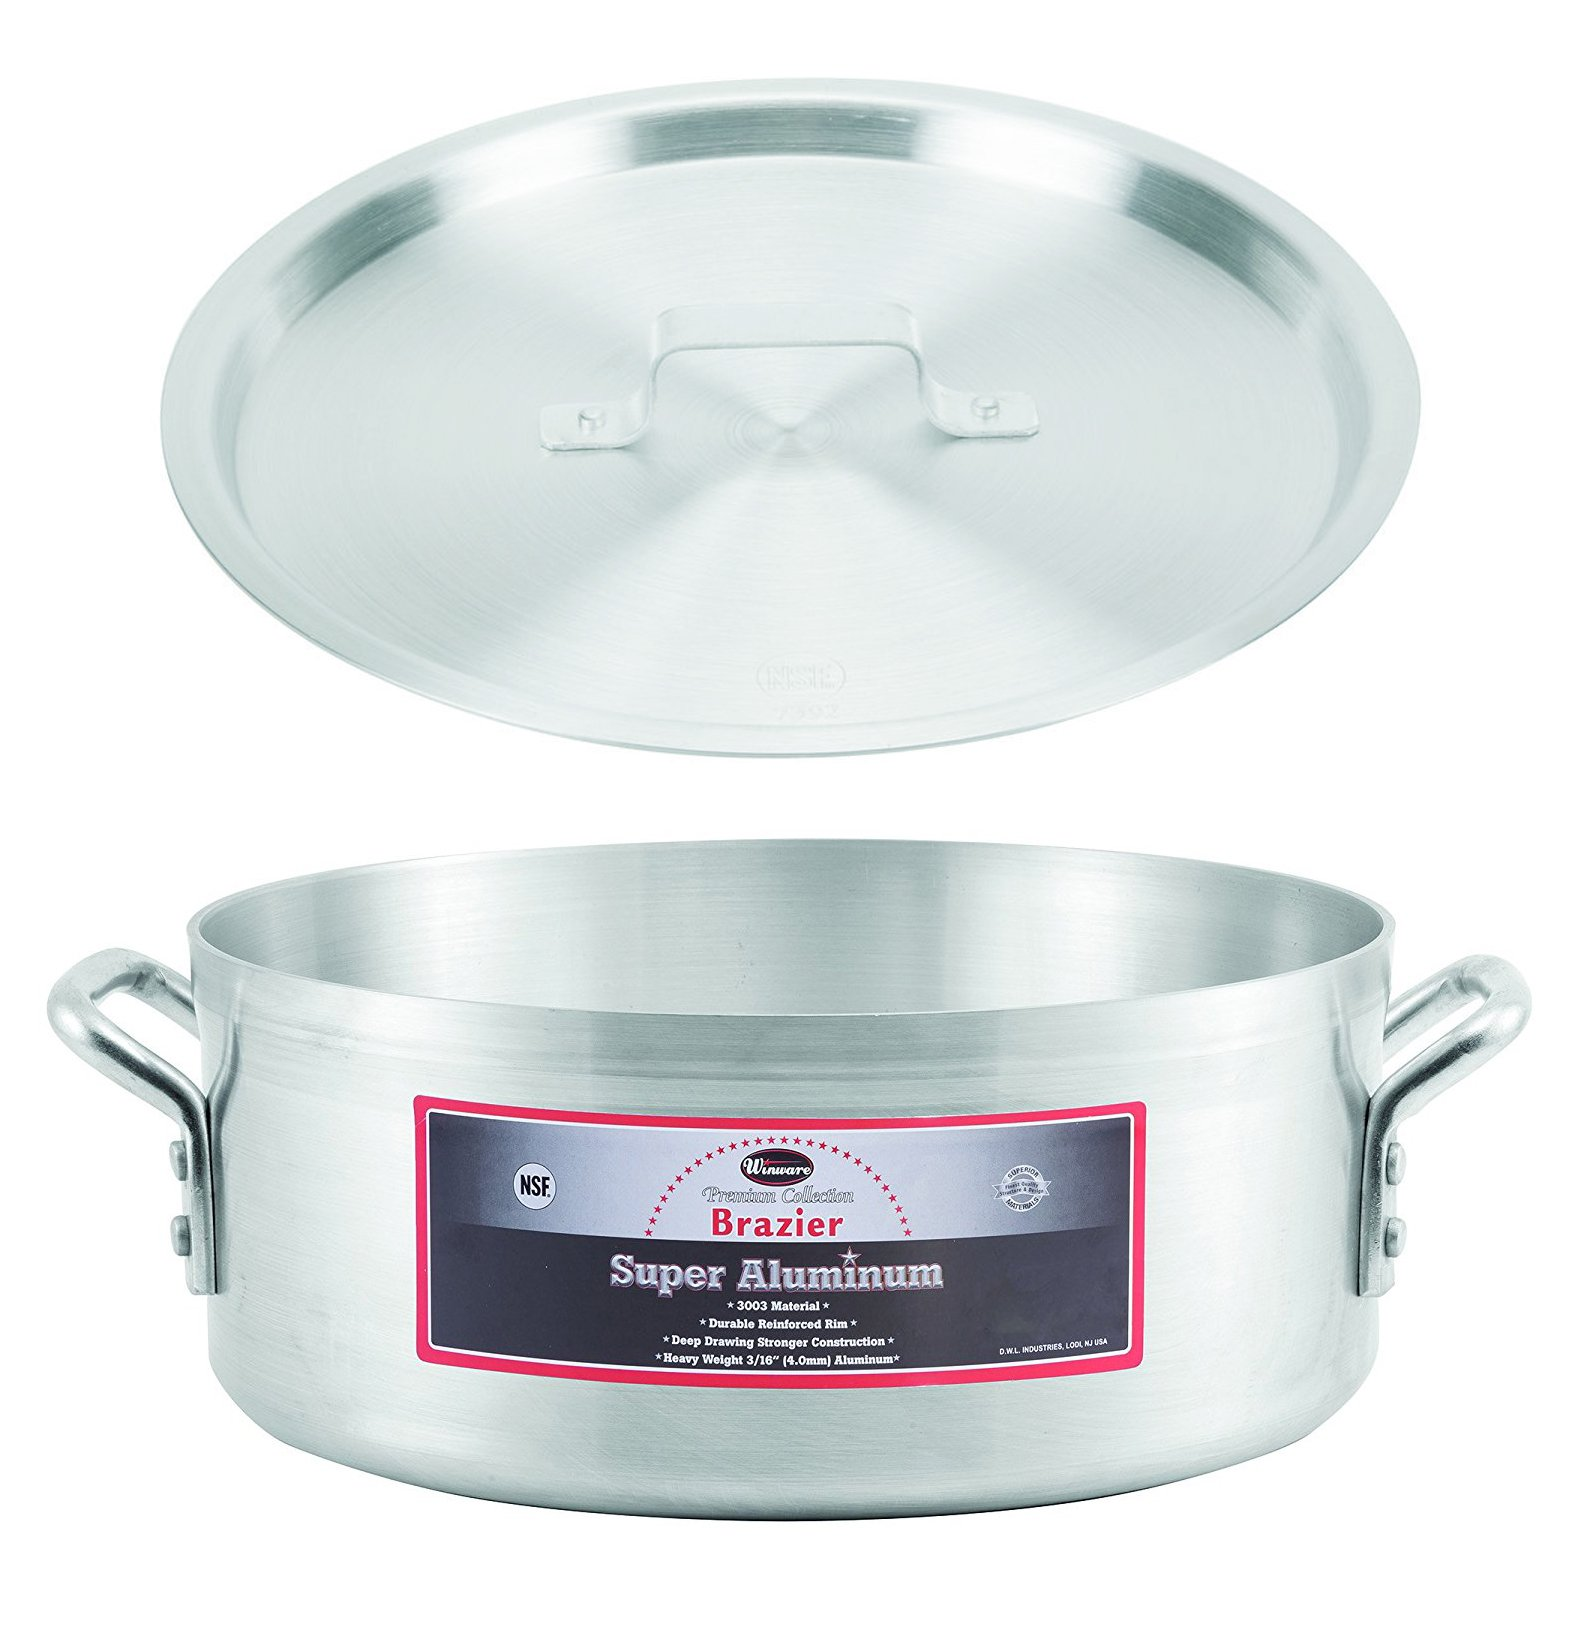 Winco AXBZ-24, 24-Quart 18-3/8'' x 5-3/4'' Super Aluminum Brazier Pan with Cover, Heavy-Duty Commercial Grade Braiser Pan with Lid, NSF by Winco